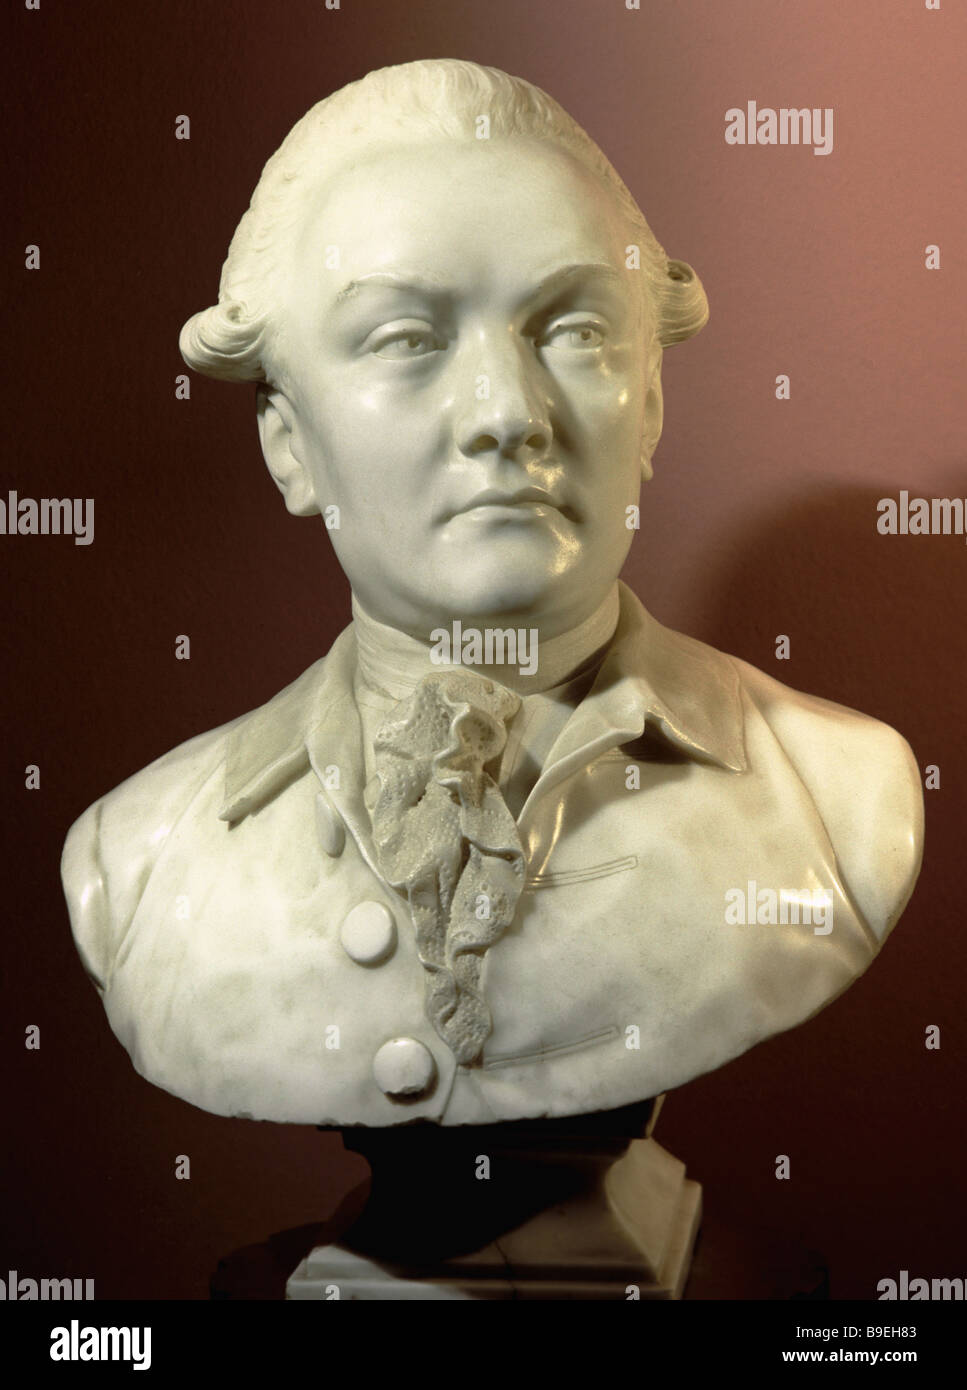 The sculptural portrait The Unknown Man by Fedot Shubin from the Tretyakov State Gallery collection - Stock Image